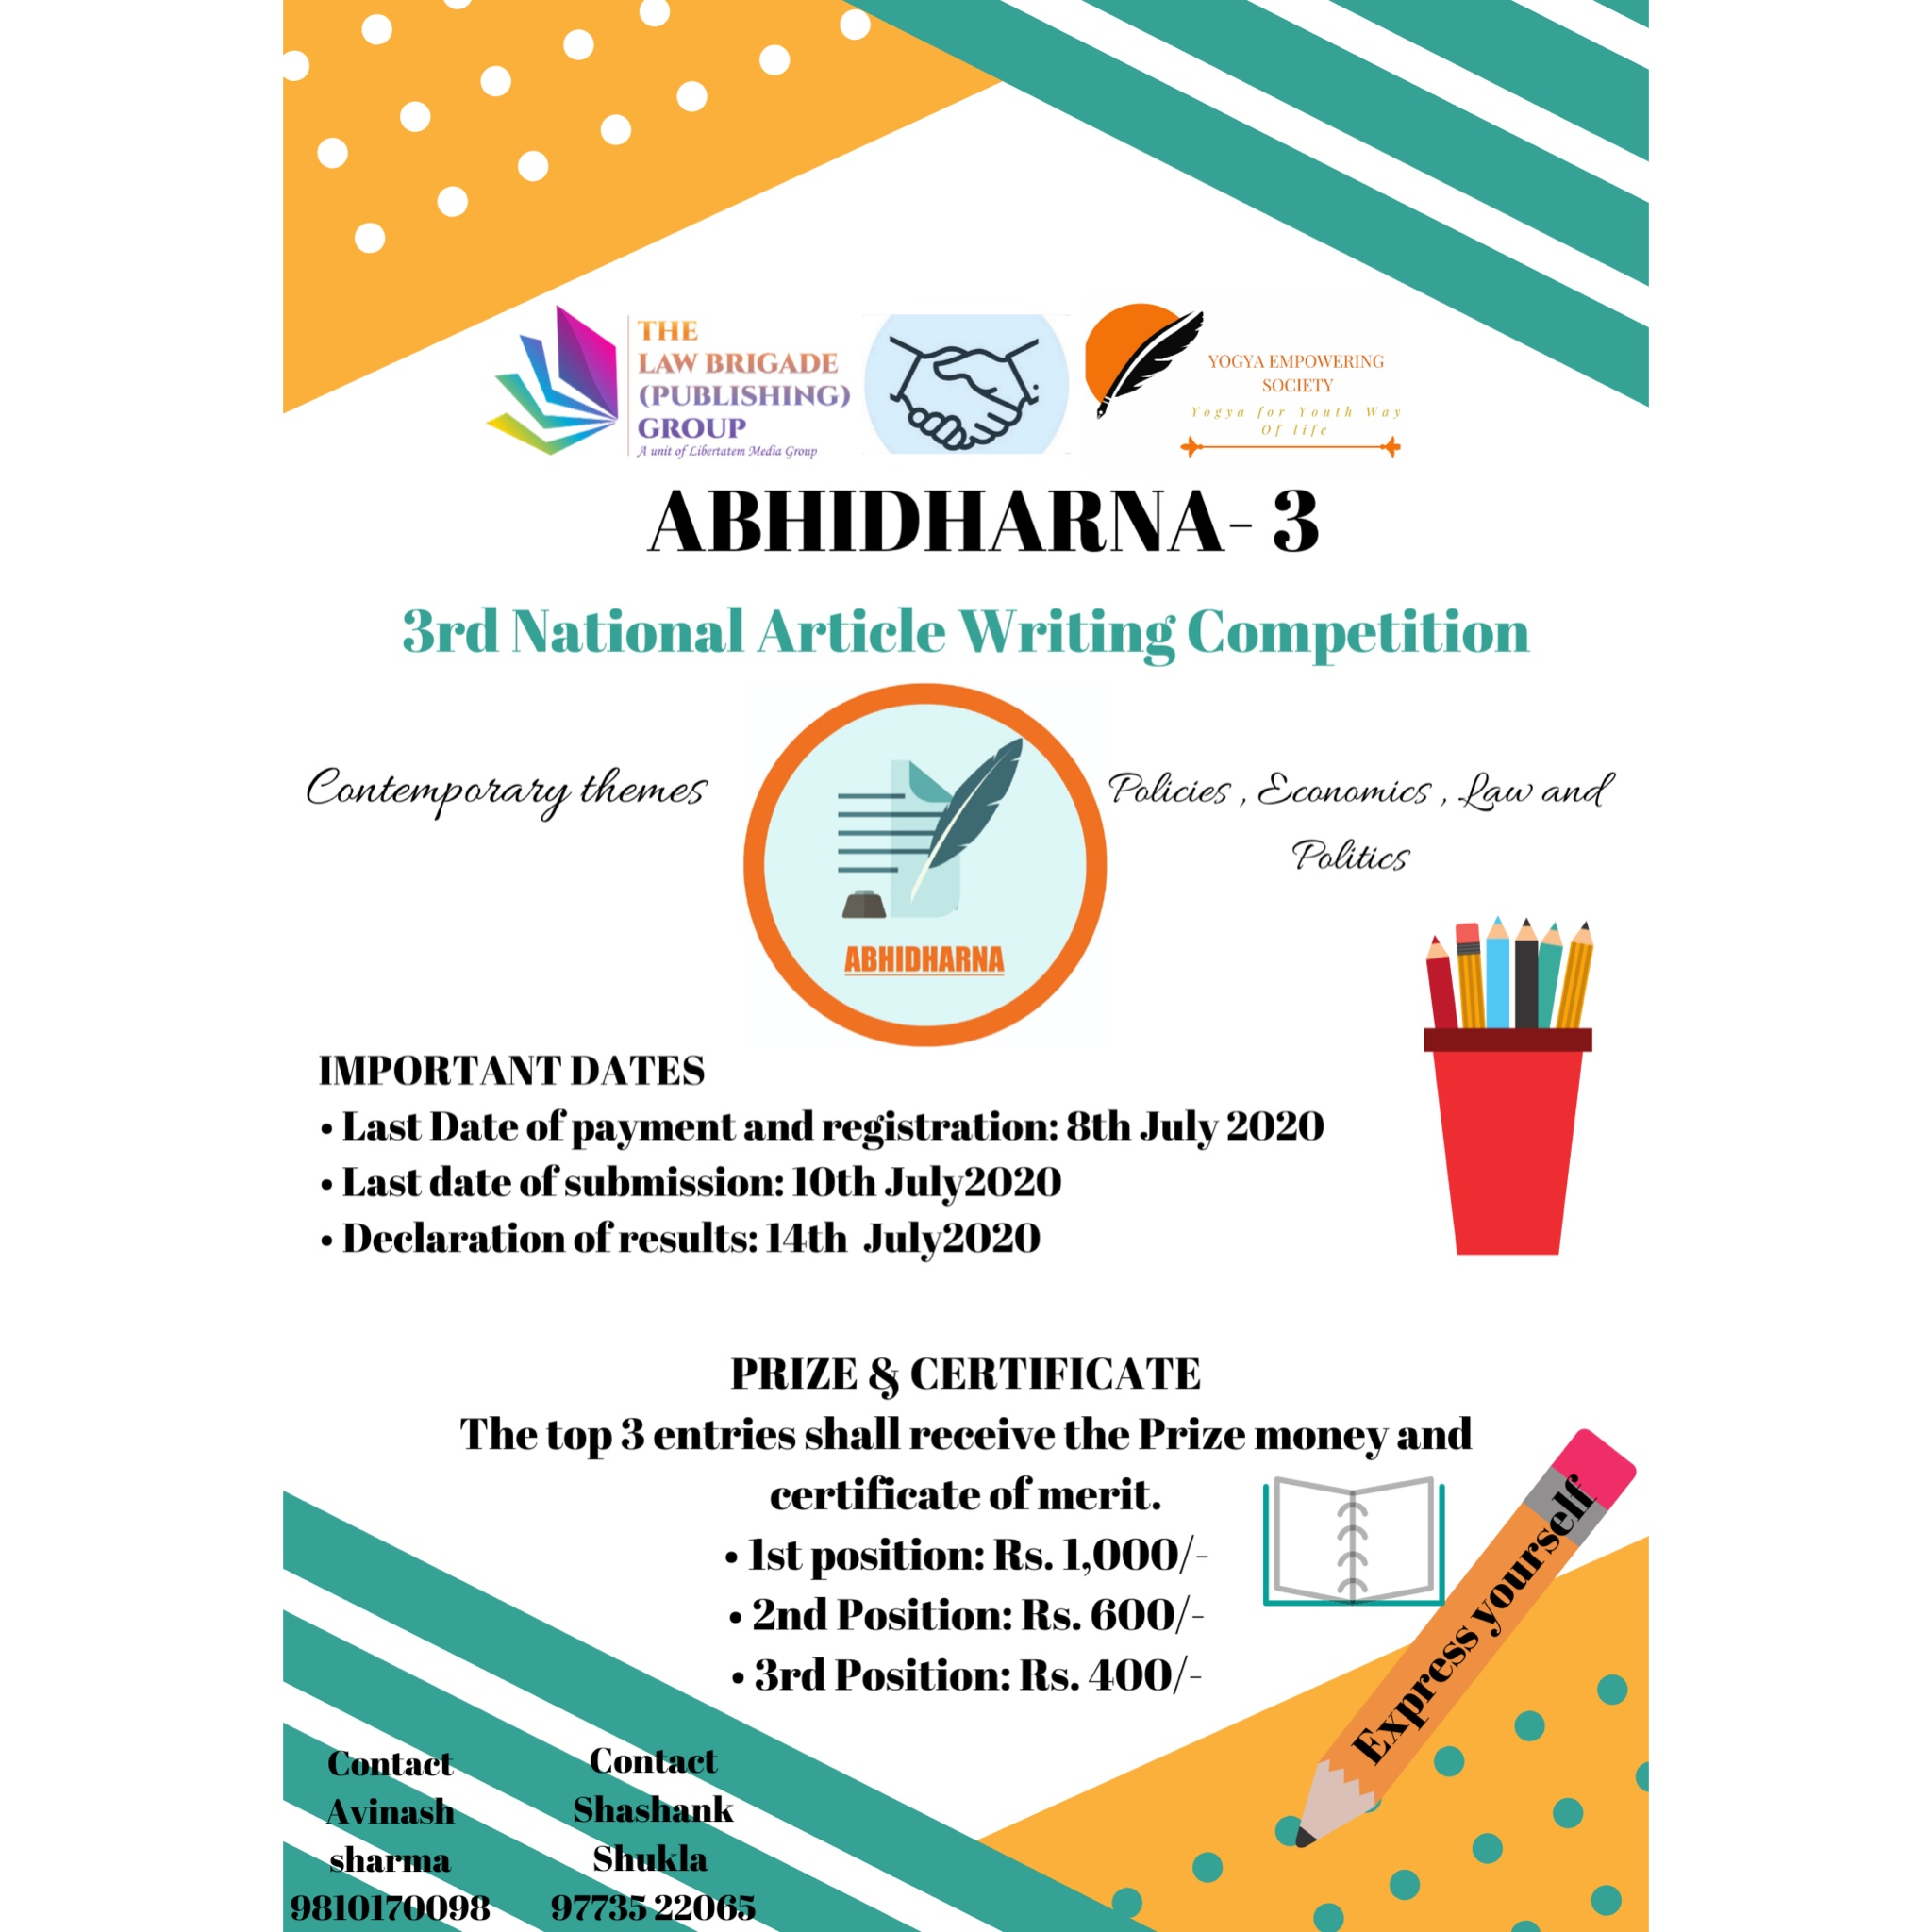 Yogya-Empowering Society Article Writing Competition